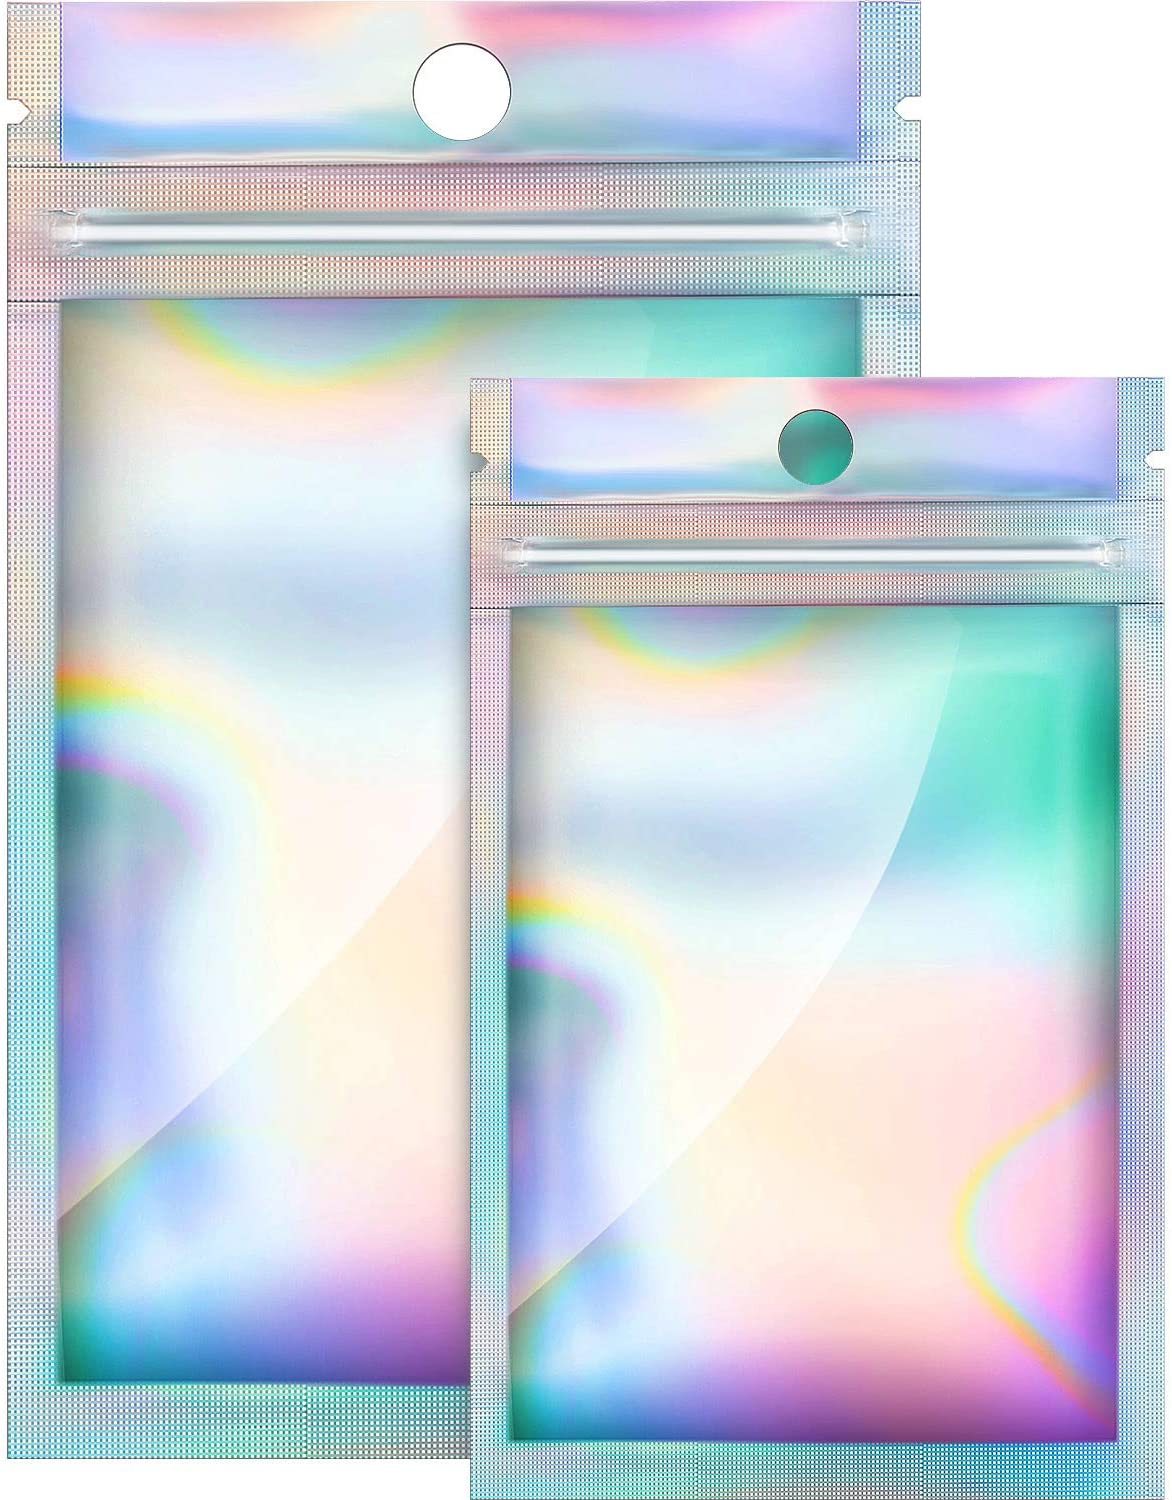 200 Pieces Resealable Smell Proof Bags Flat Ziplock Bag Self Sealing Foil Pouch Bag 2.3 x 3.9 Inch and 3 x 5 Inch Mylar Zip Lock Food Candy Storage Bags Holographic Rainbow Color